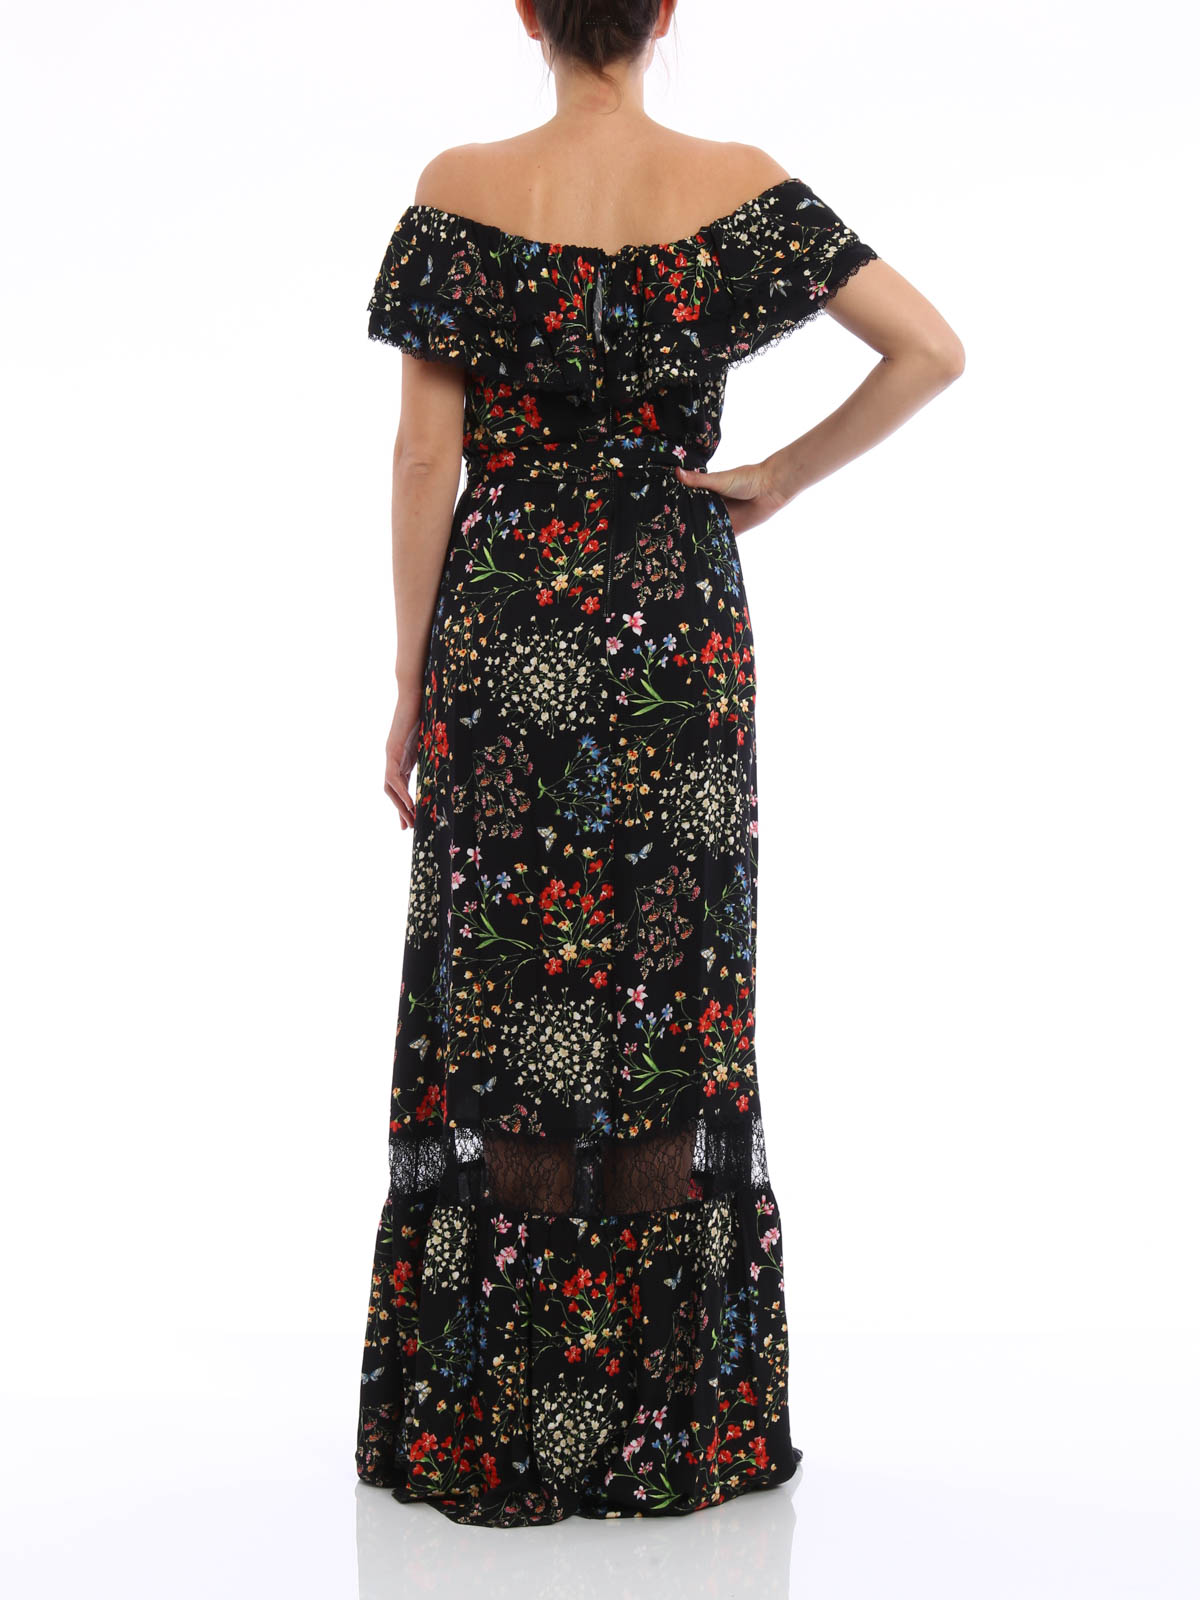 Shop By Lulus Label. Brands We Love. MAXI DRESSES WEDDING GUEST 70% OFF SALE HOMECOMING. HOMECOMING. 70% OFF SALE. BACK IN STOCK. DRESSES. WHAT'S NEW. SHOES. SALE. MAXI DRESSES. WEDDING GUEST. NEW ARRIVALS Carlton Black Button-Up Top. $ It Was All A Dream Multi Stripe Bell Sleeve Sweater Dress.